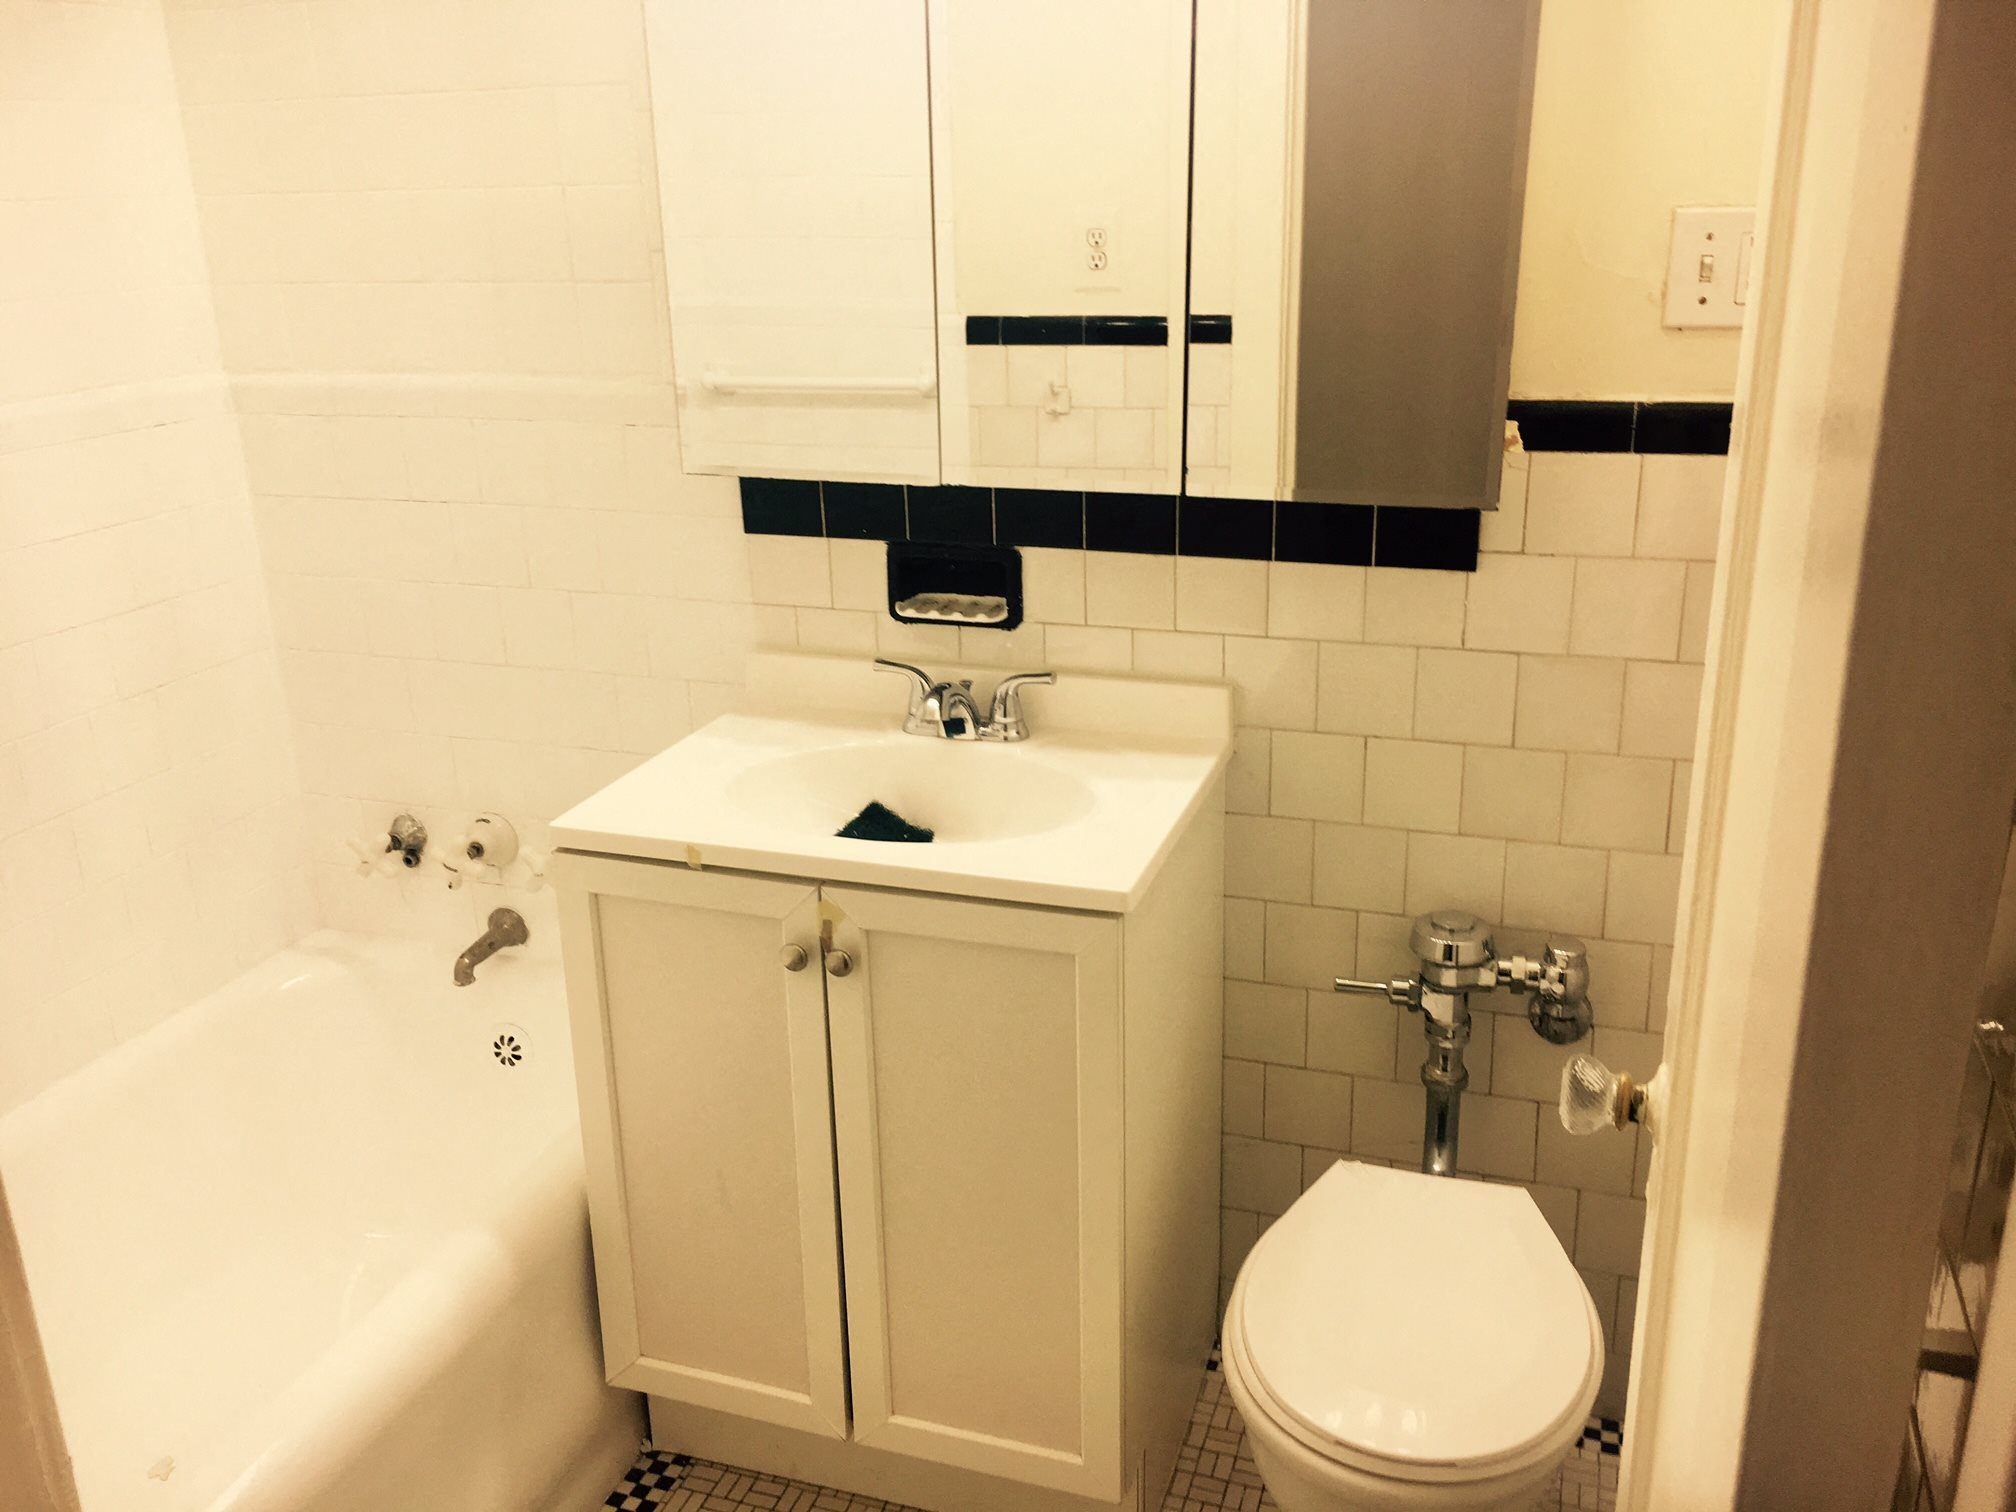 Bathroom with Tile Surround at 14 West Elm Apartments, Chicago, IL 60610